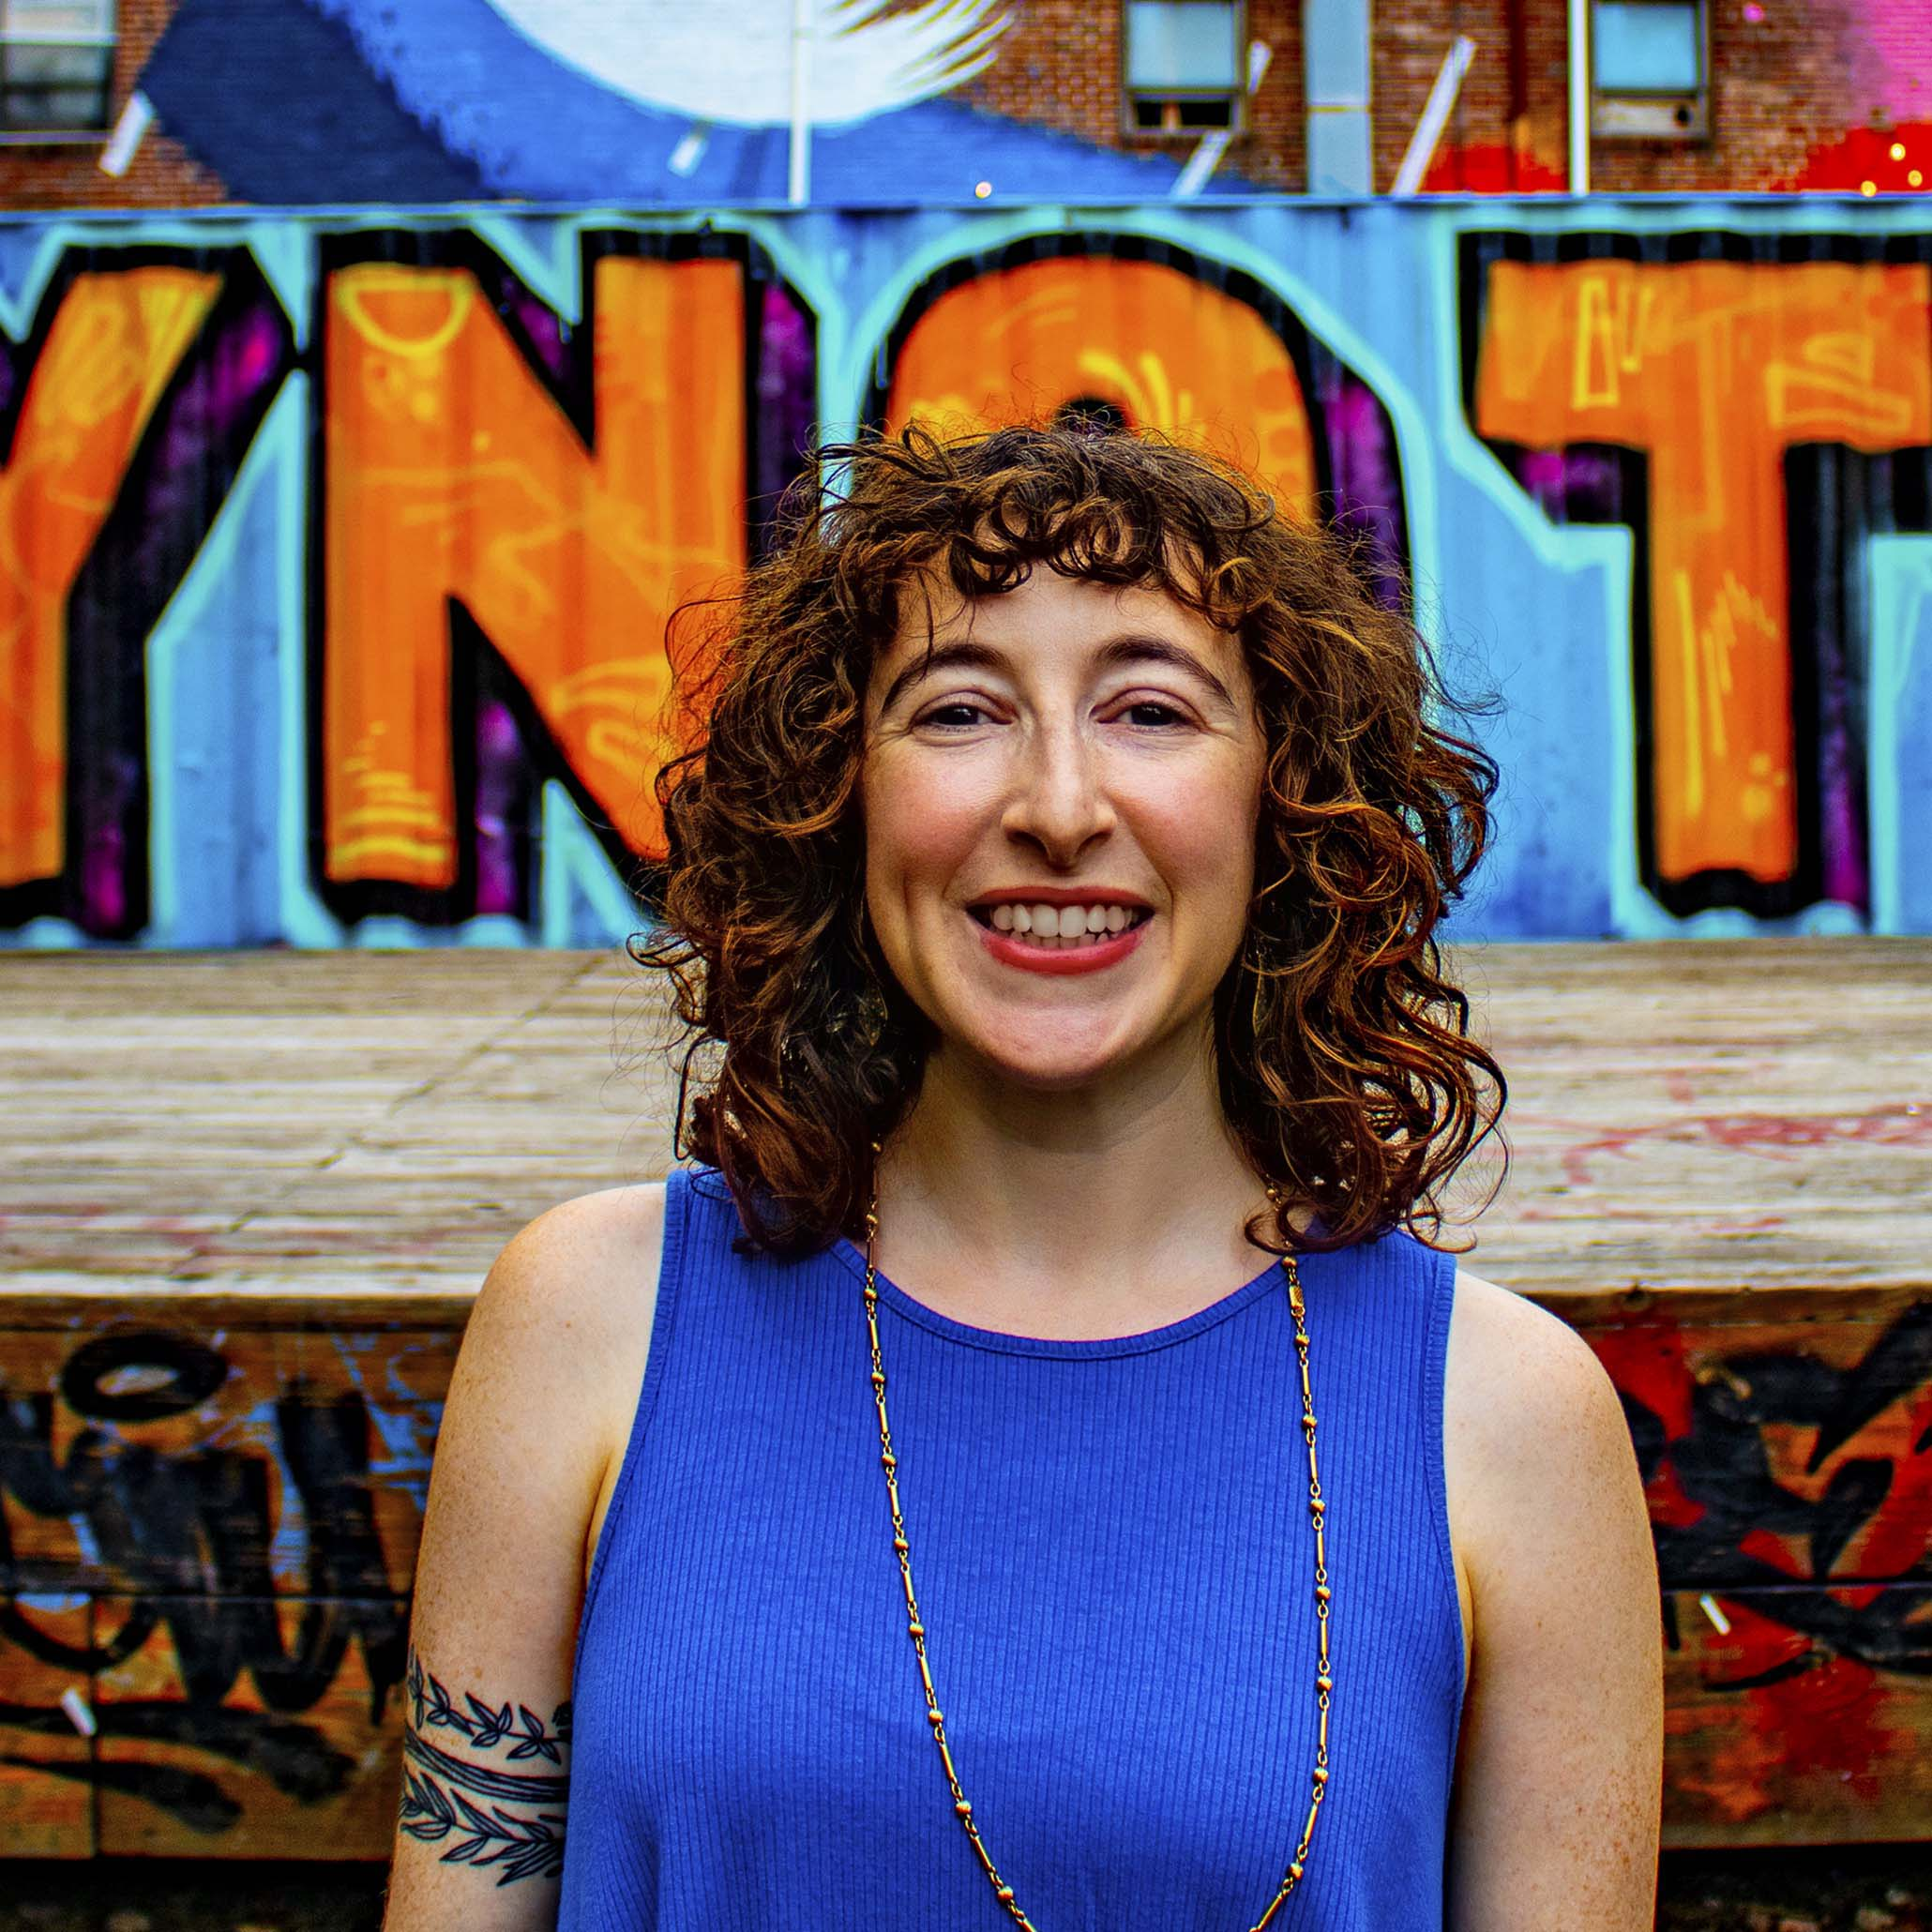 Abby Becker Ⓒ Edward Weiss for the Central Baltimore Partnership